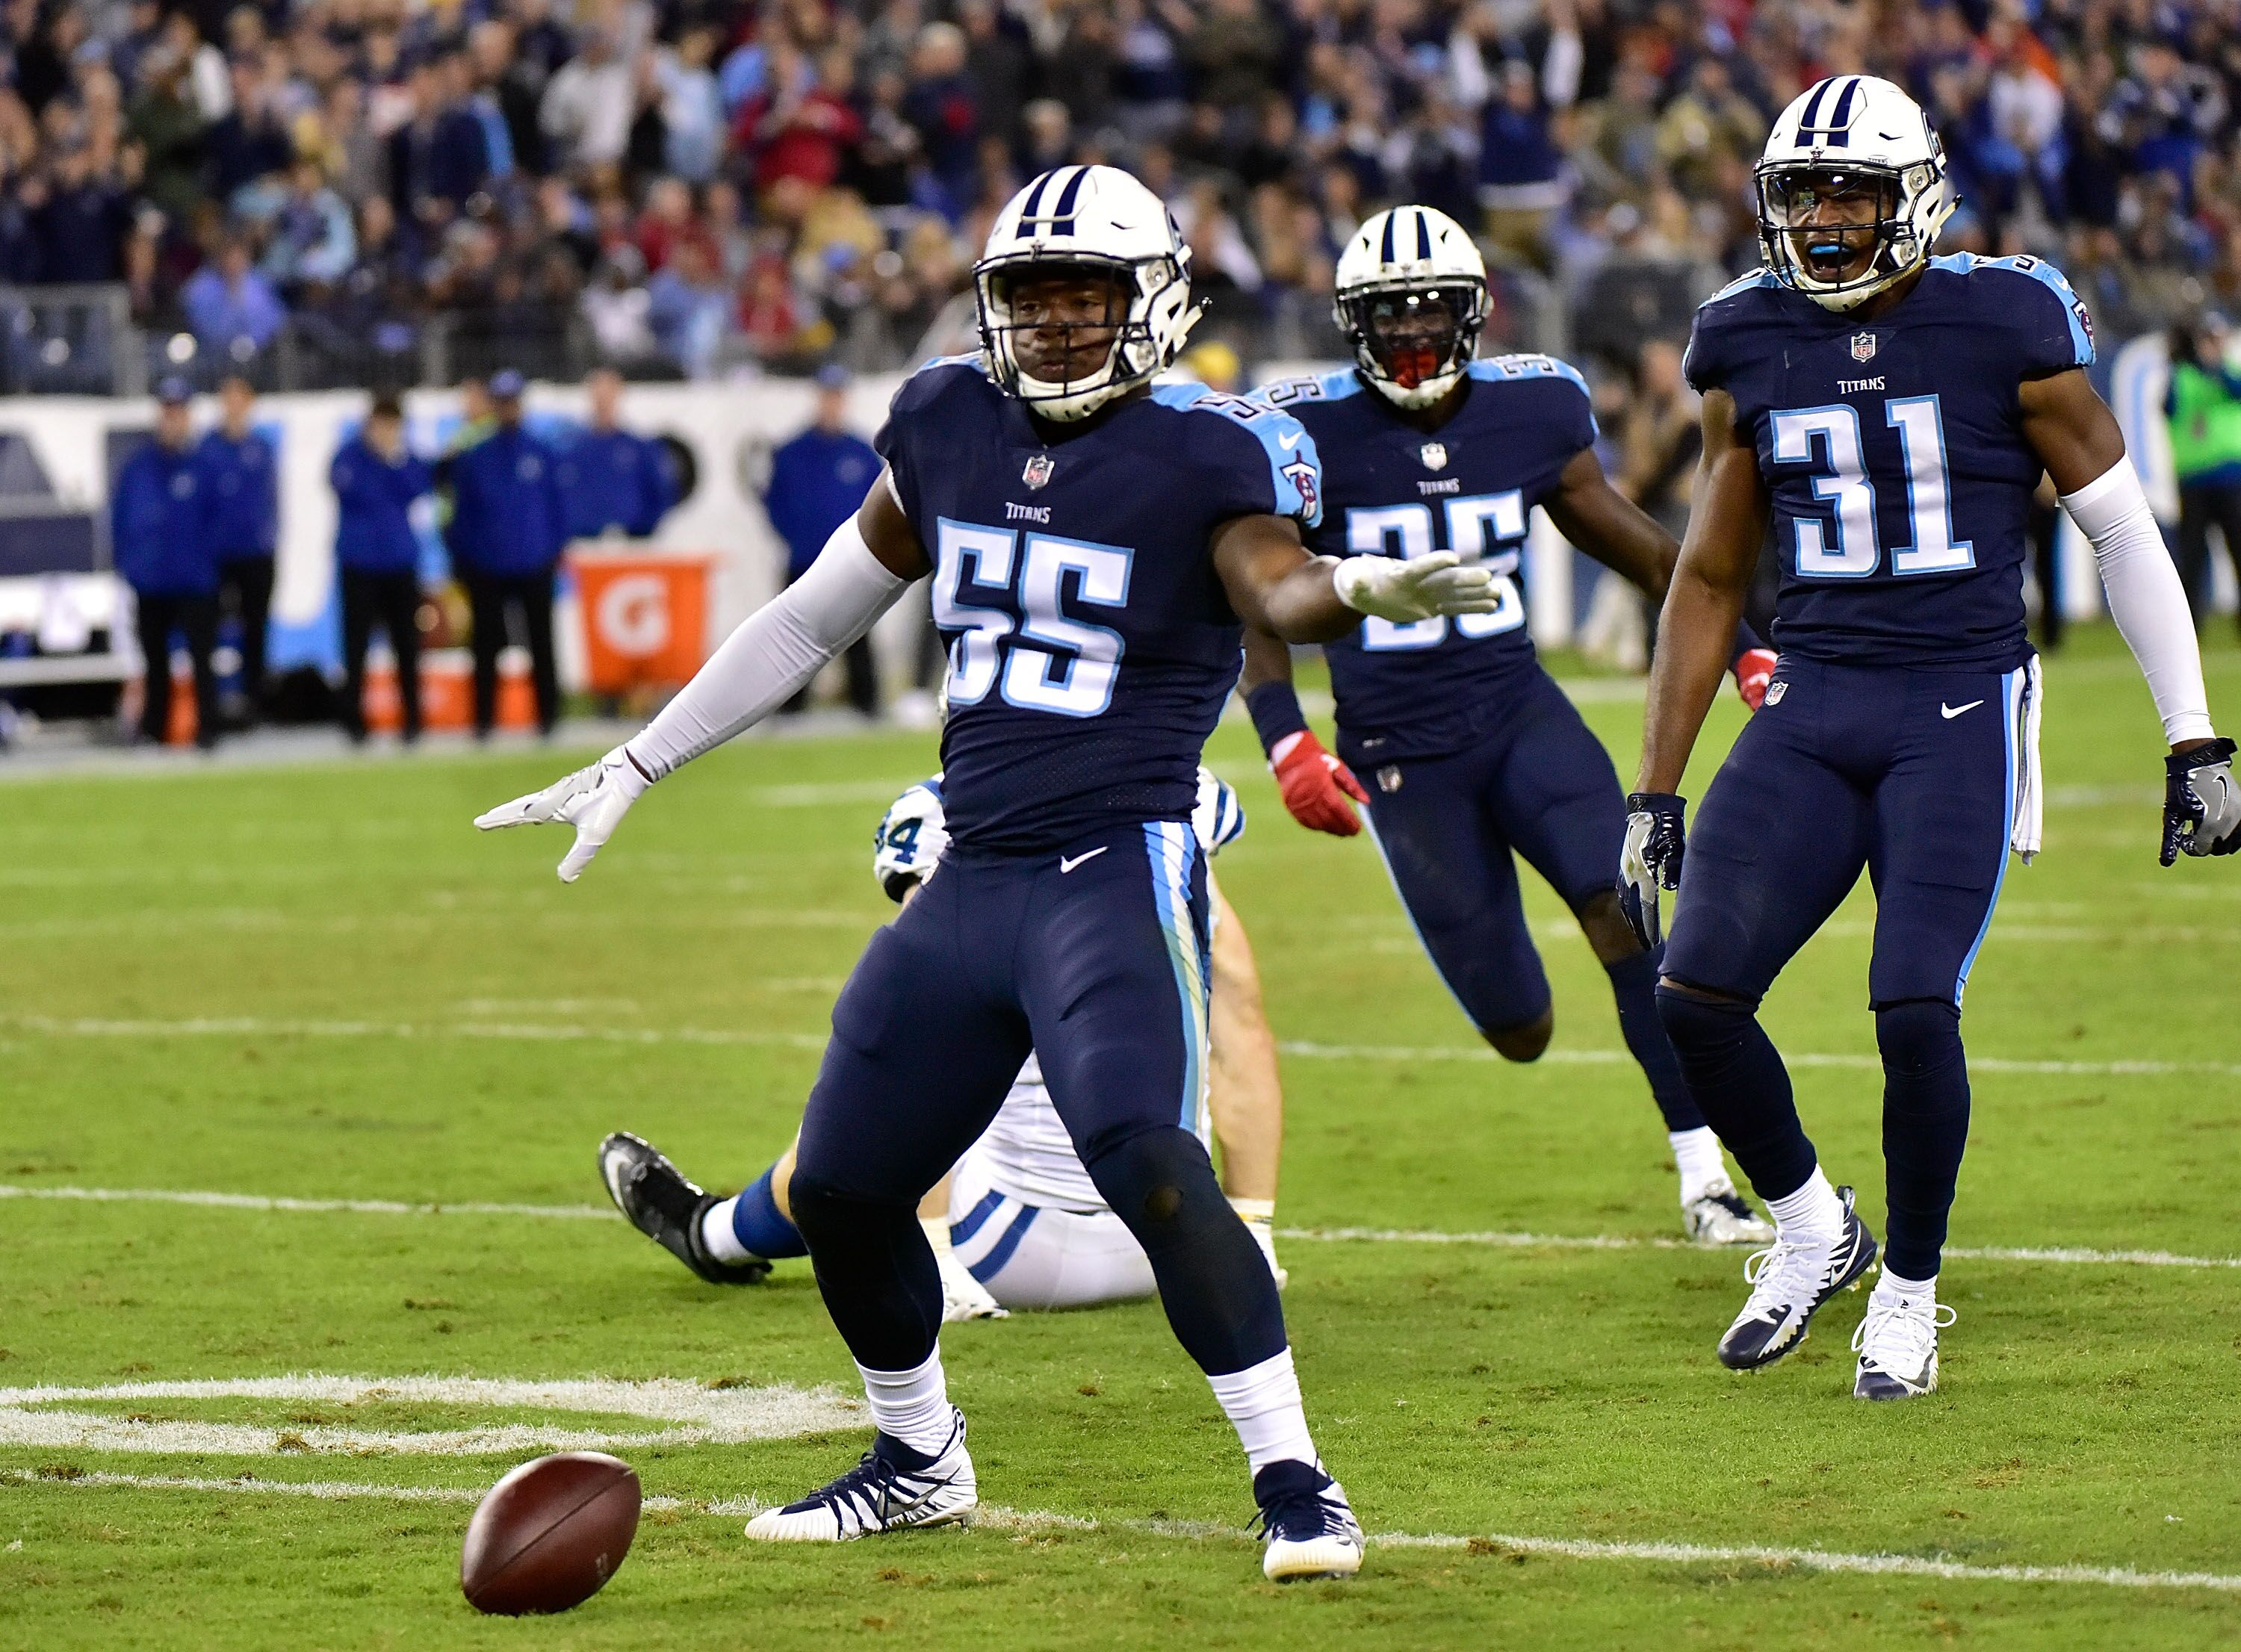 Tennessee Titans snubbed by Adam Schein on top 9 NFL defenses list